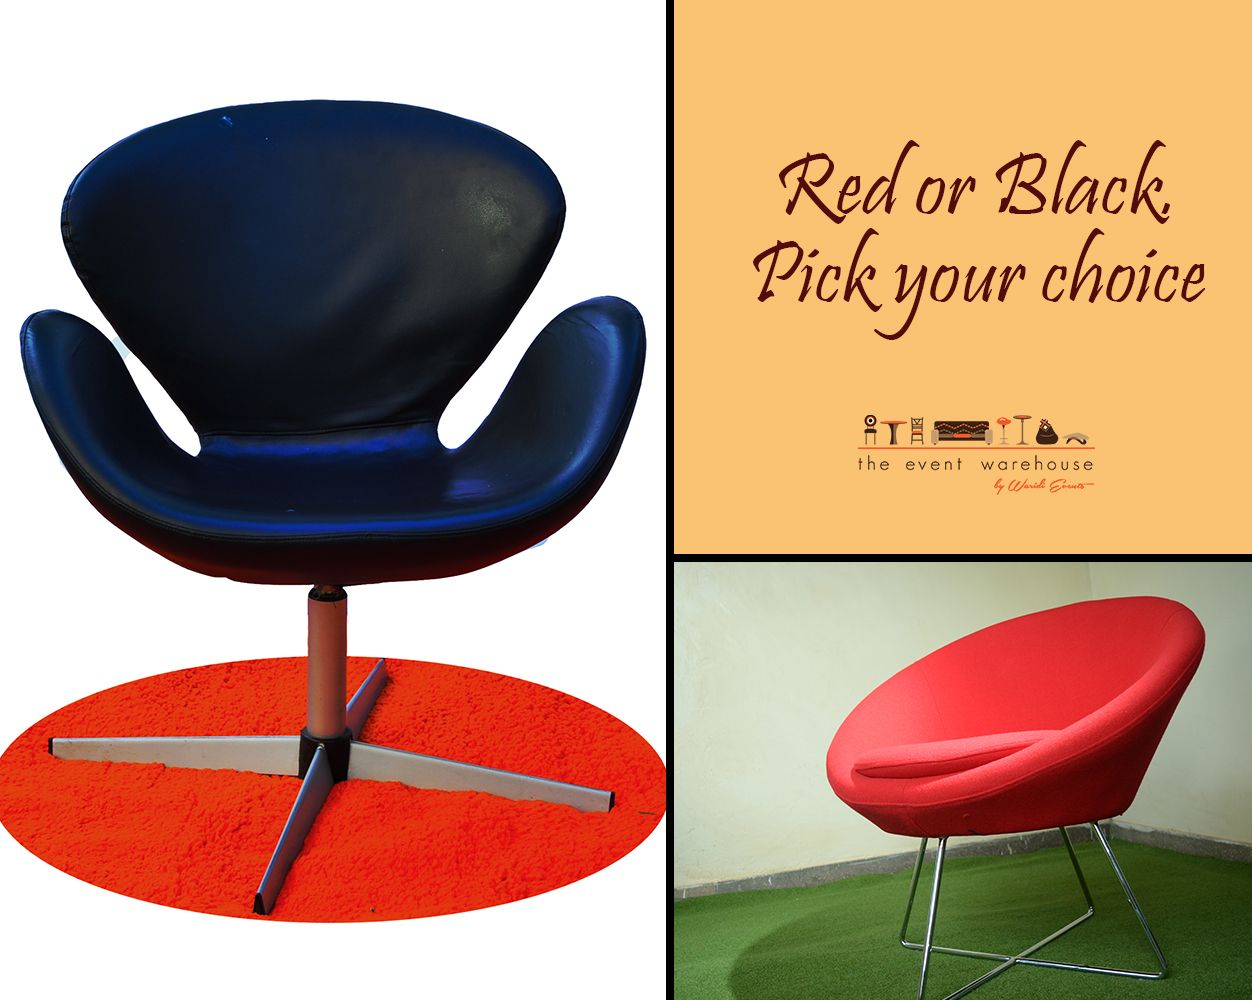 Red or Black. Pick your choice. http://chk.to/hqC1wzE